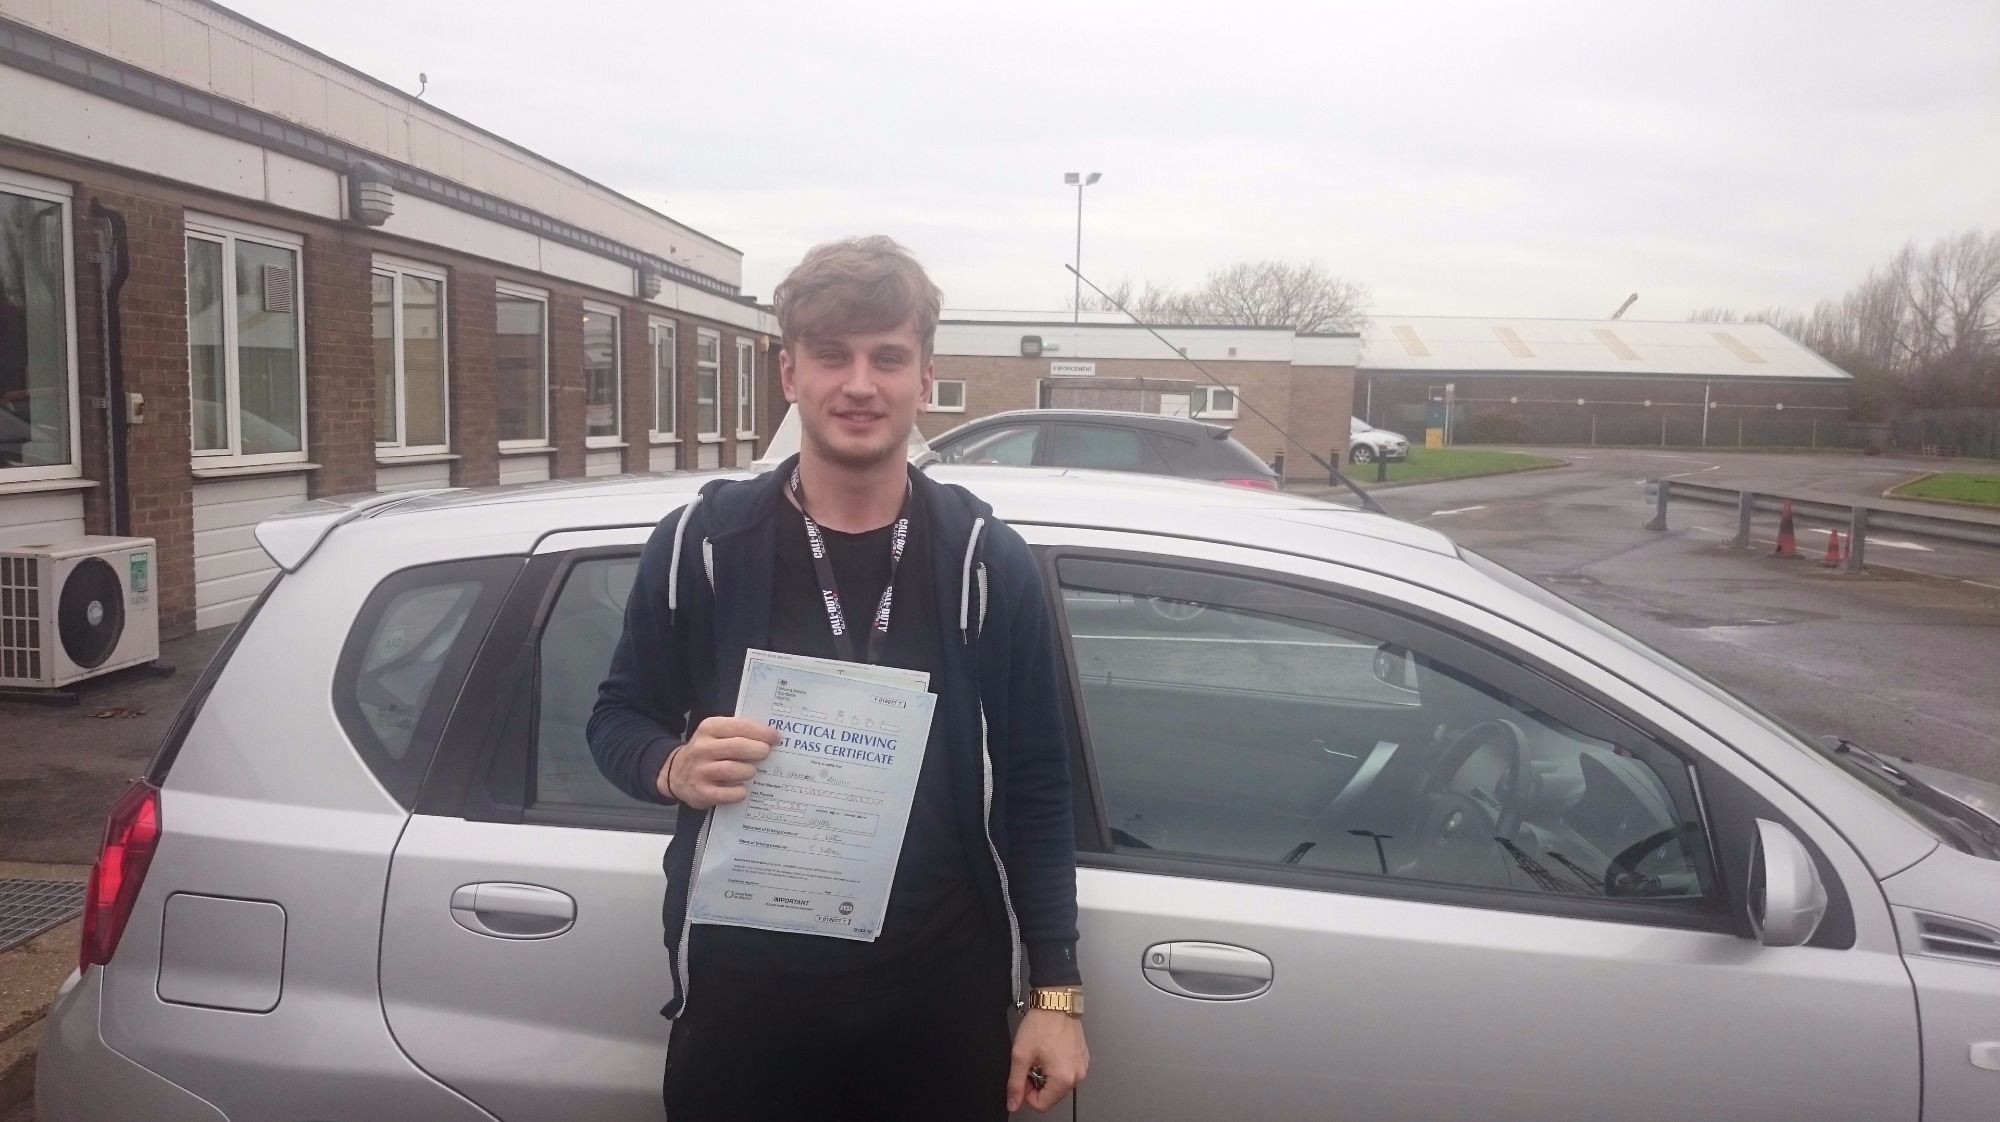 Arnolodas Paliulis took his driving lessons and passes his test in Grimsby with 21st Century Driving